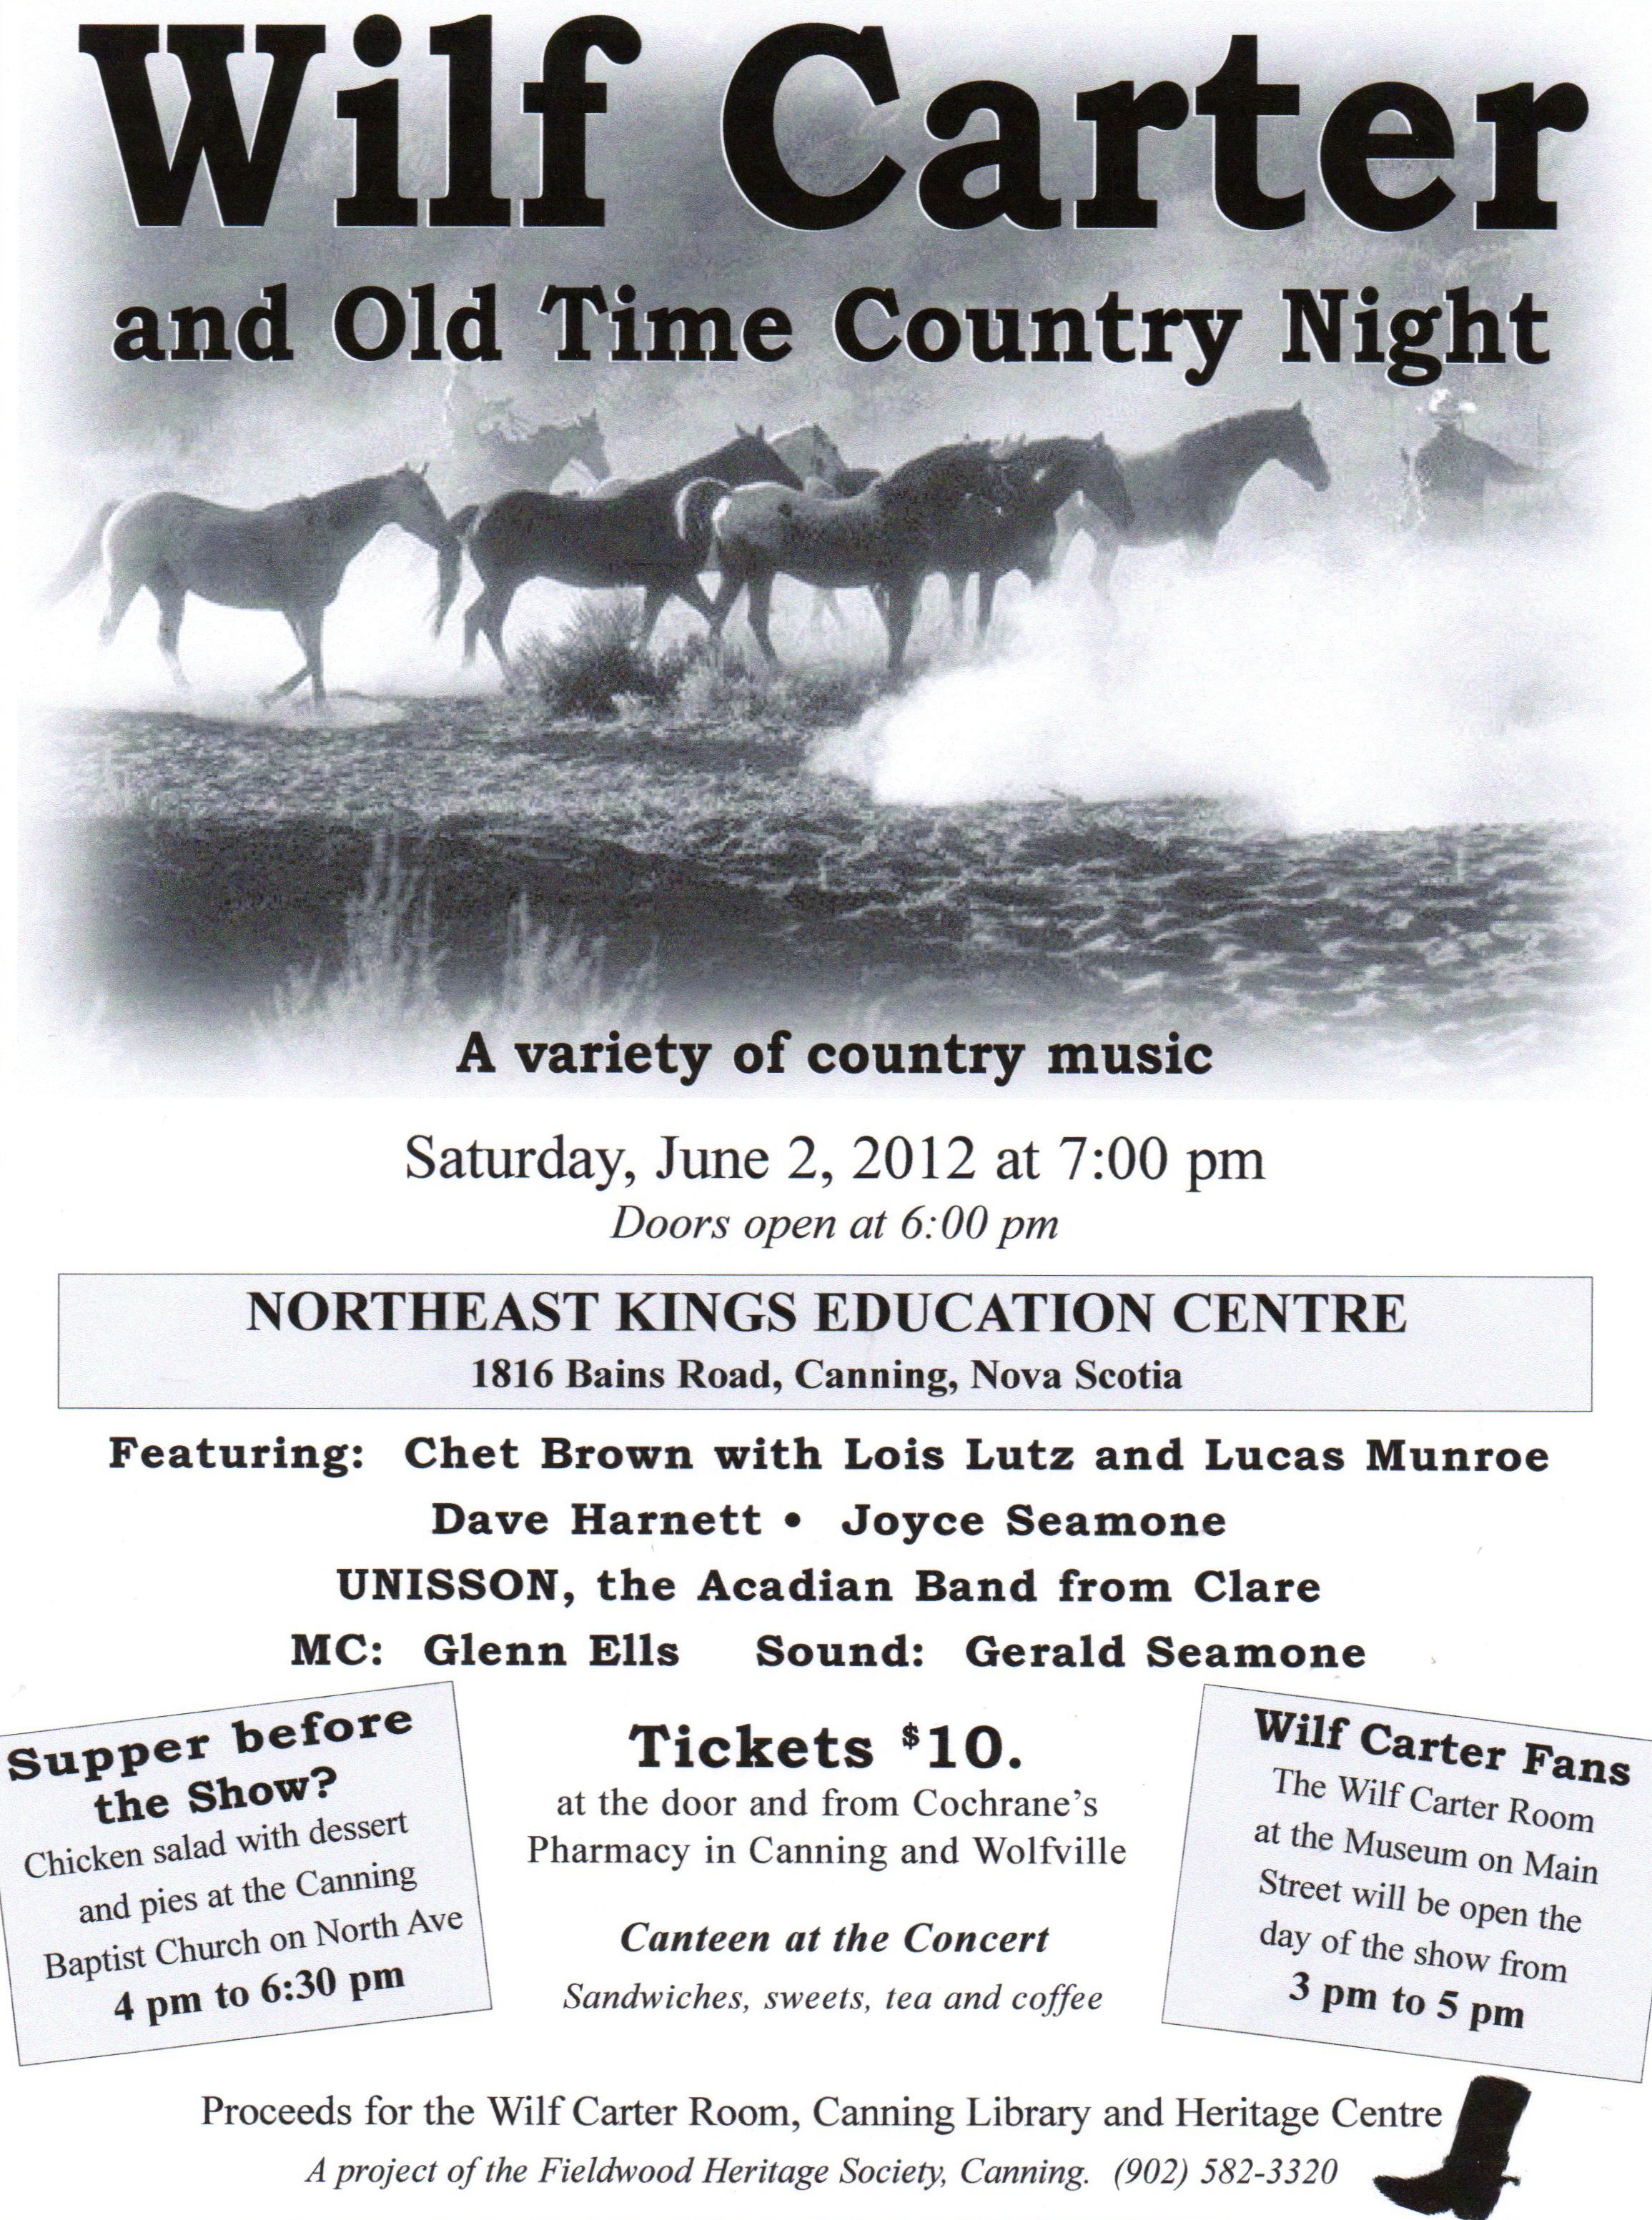 Poster: Fieldwood Heritage Society, Wilf Carter and Old Time Country Night, Saturday, June 2, 2012